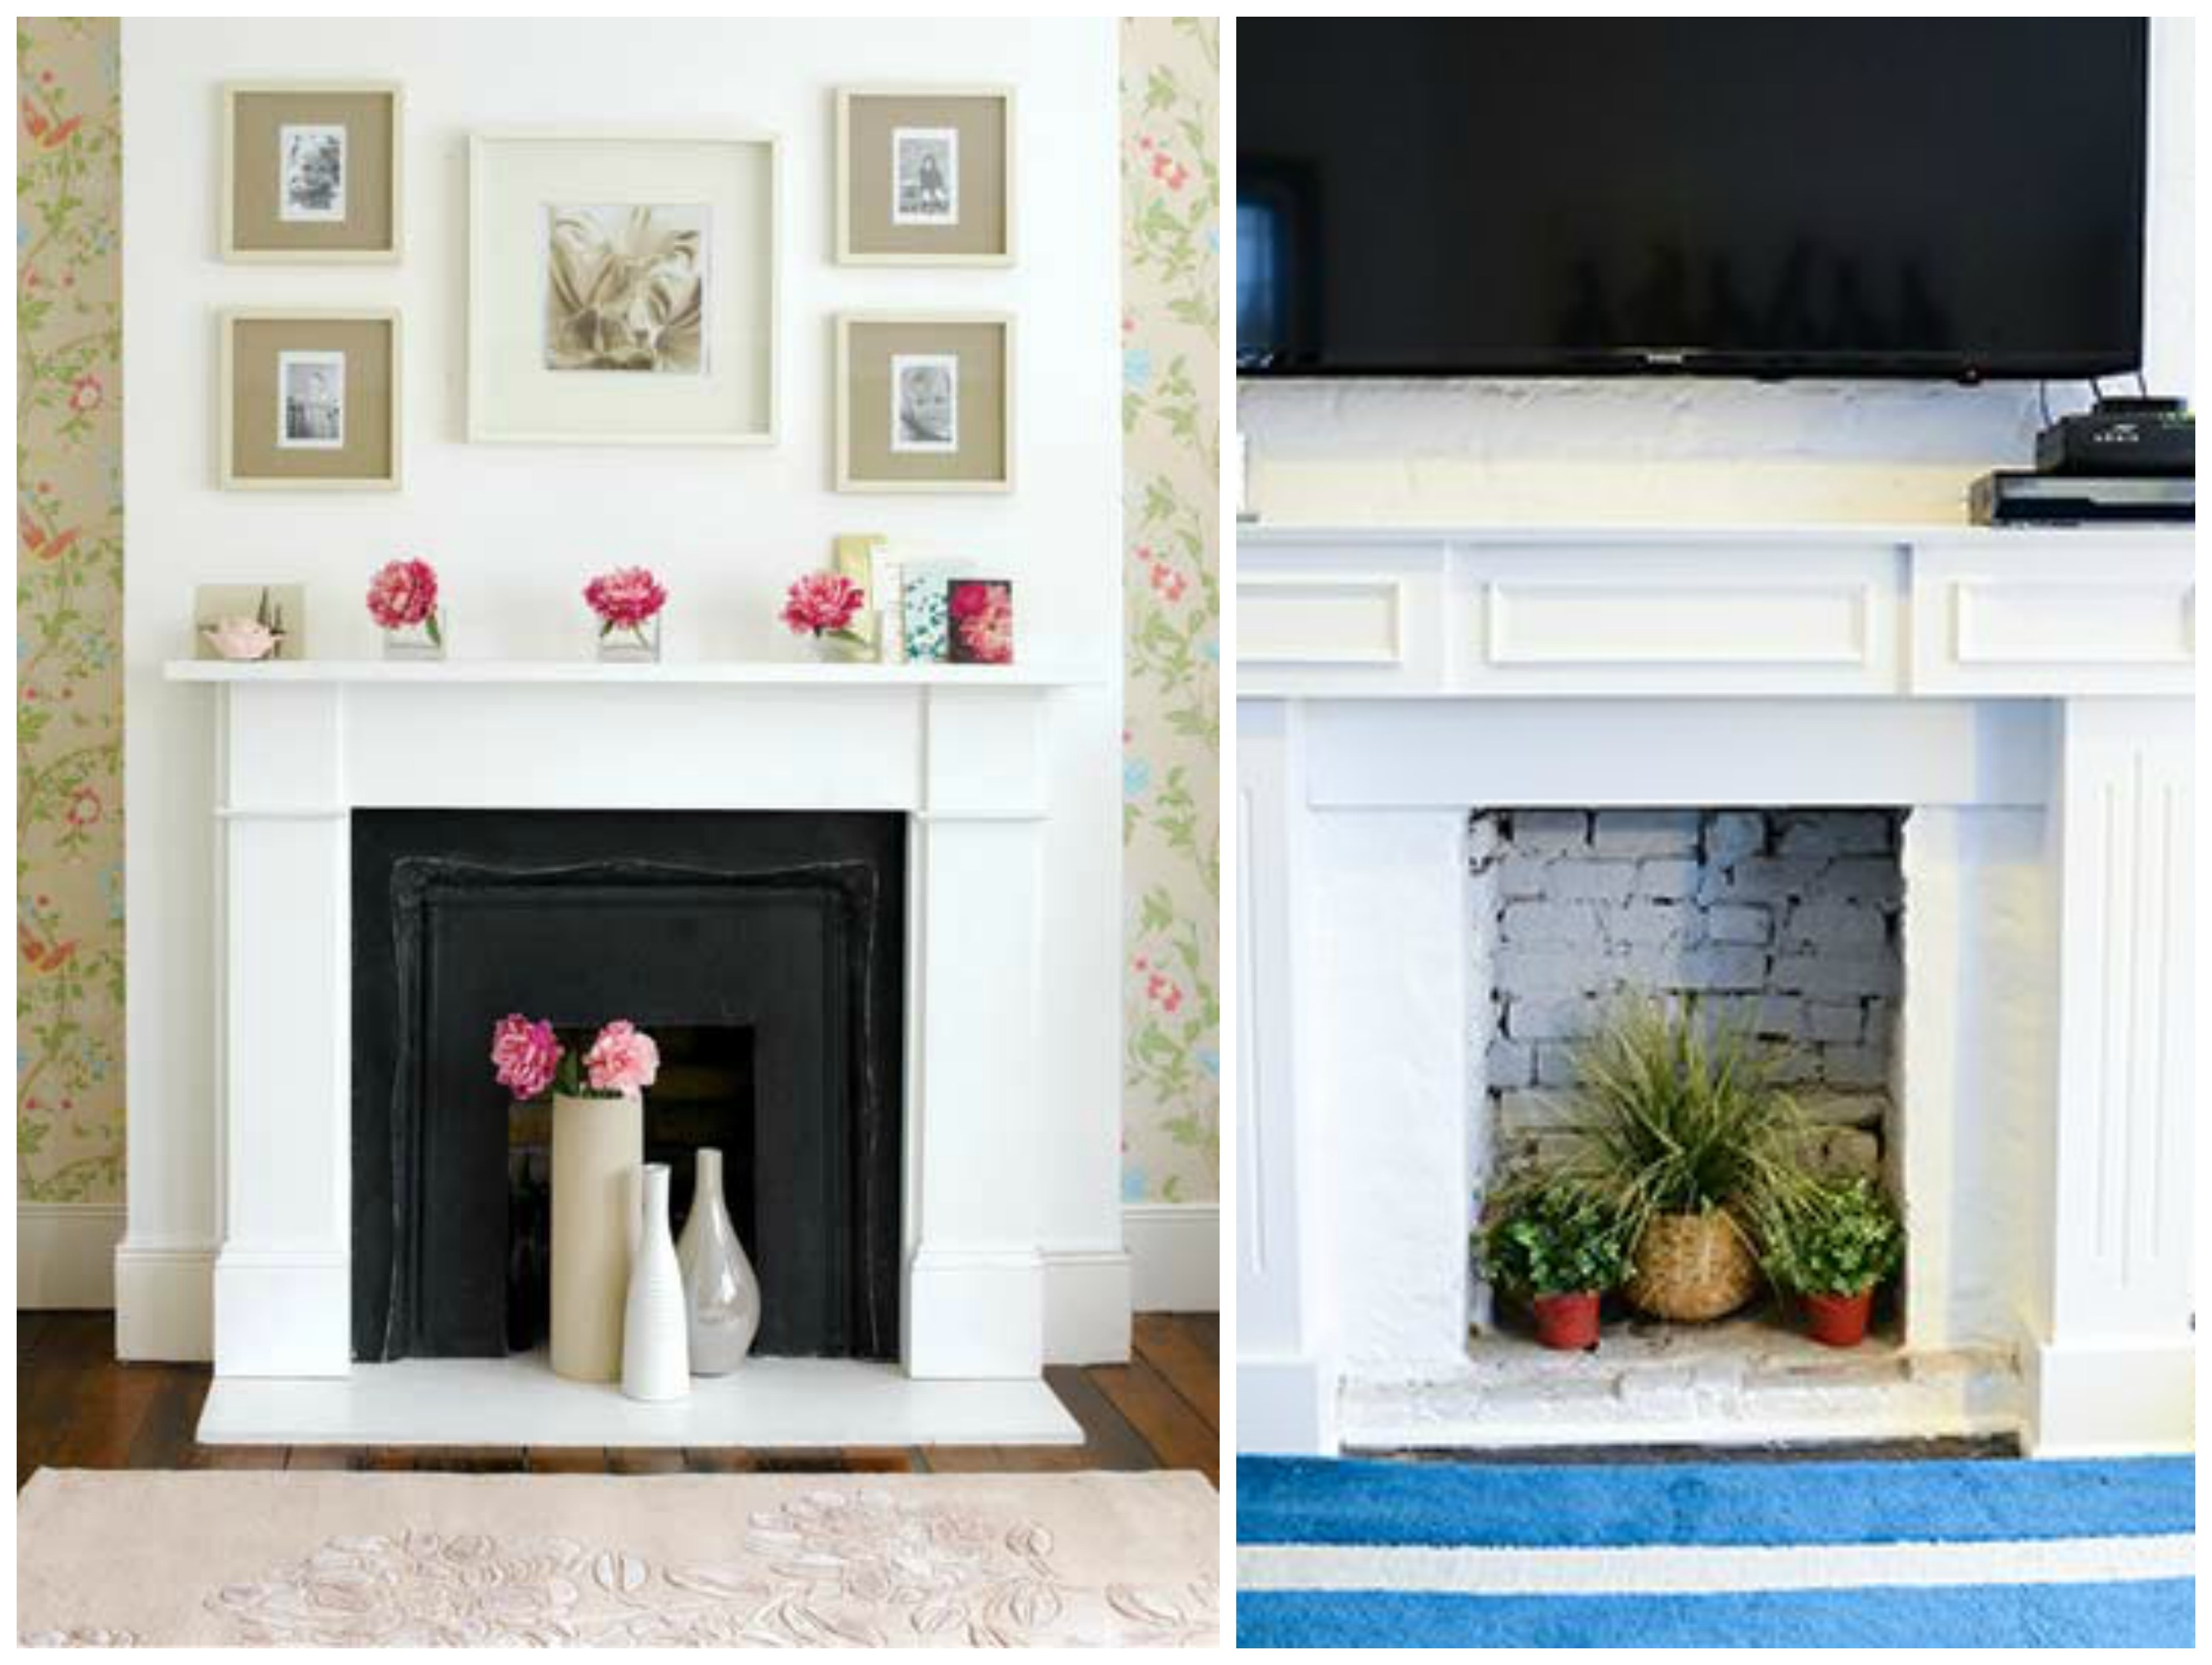 7 ways to decorate a non working fireplace celebricious - Non working fireplace ideas ...